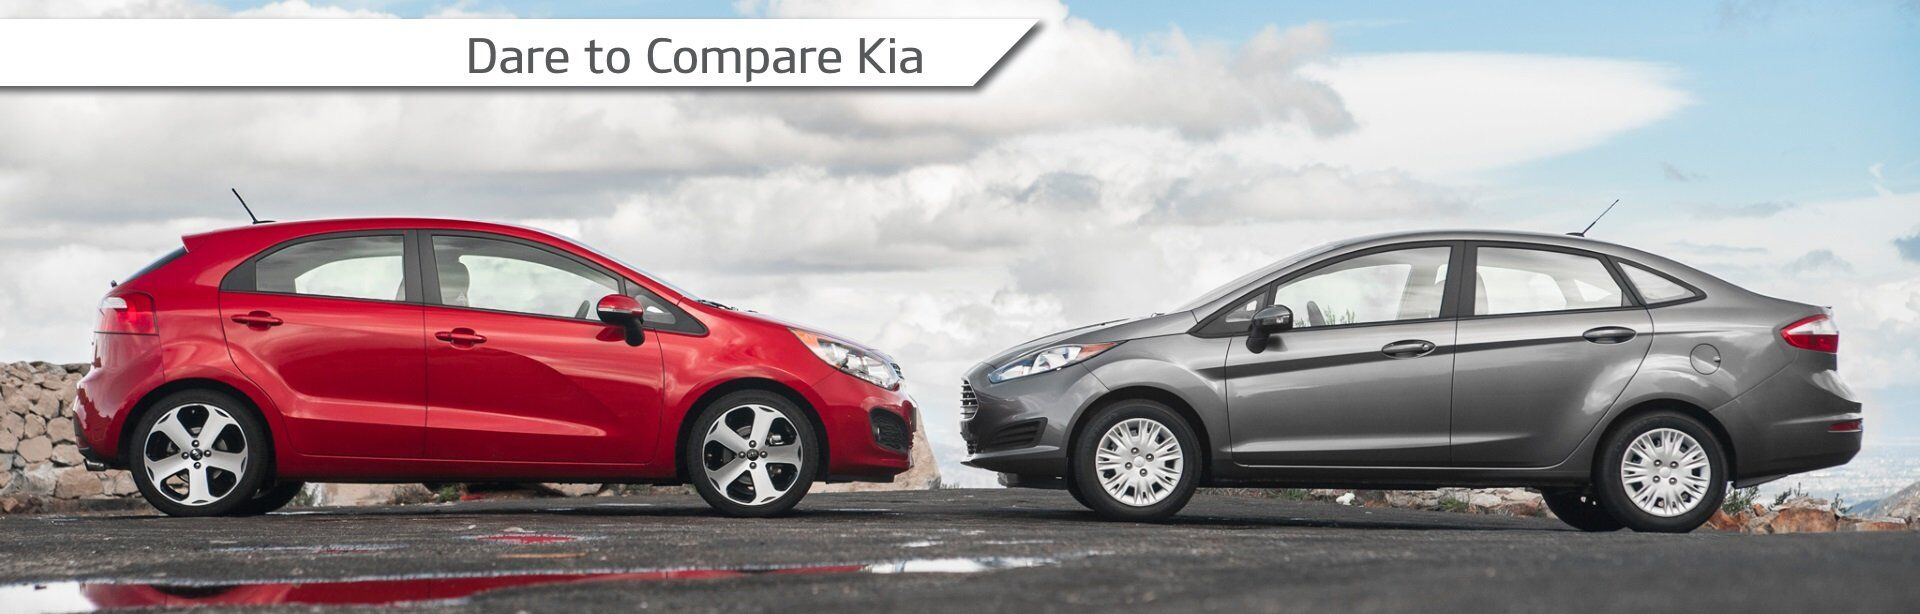 Dare to Compare Kia